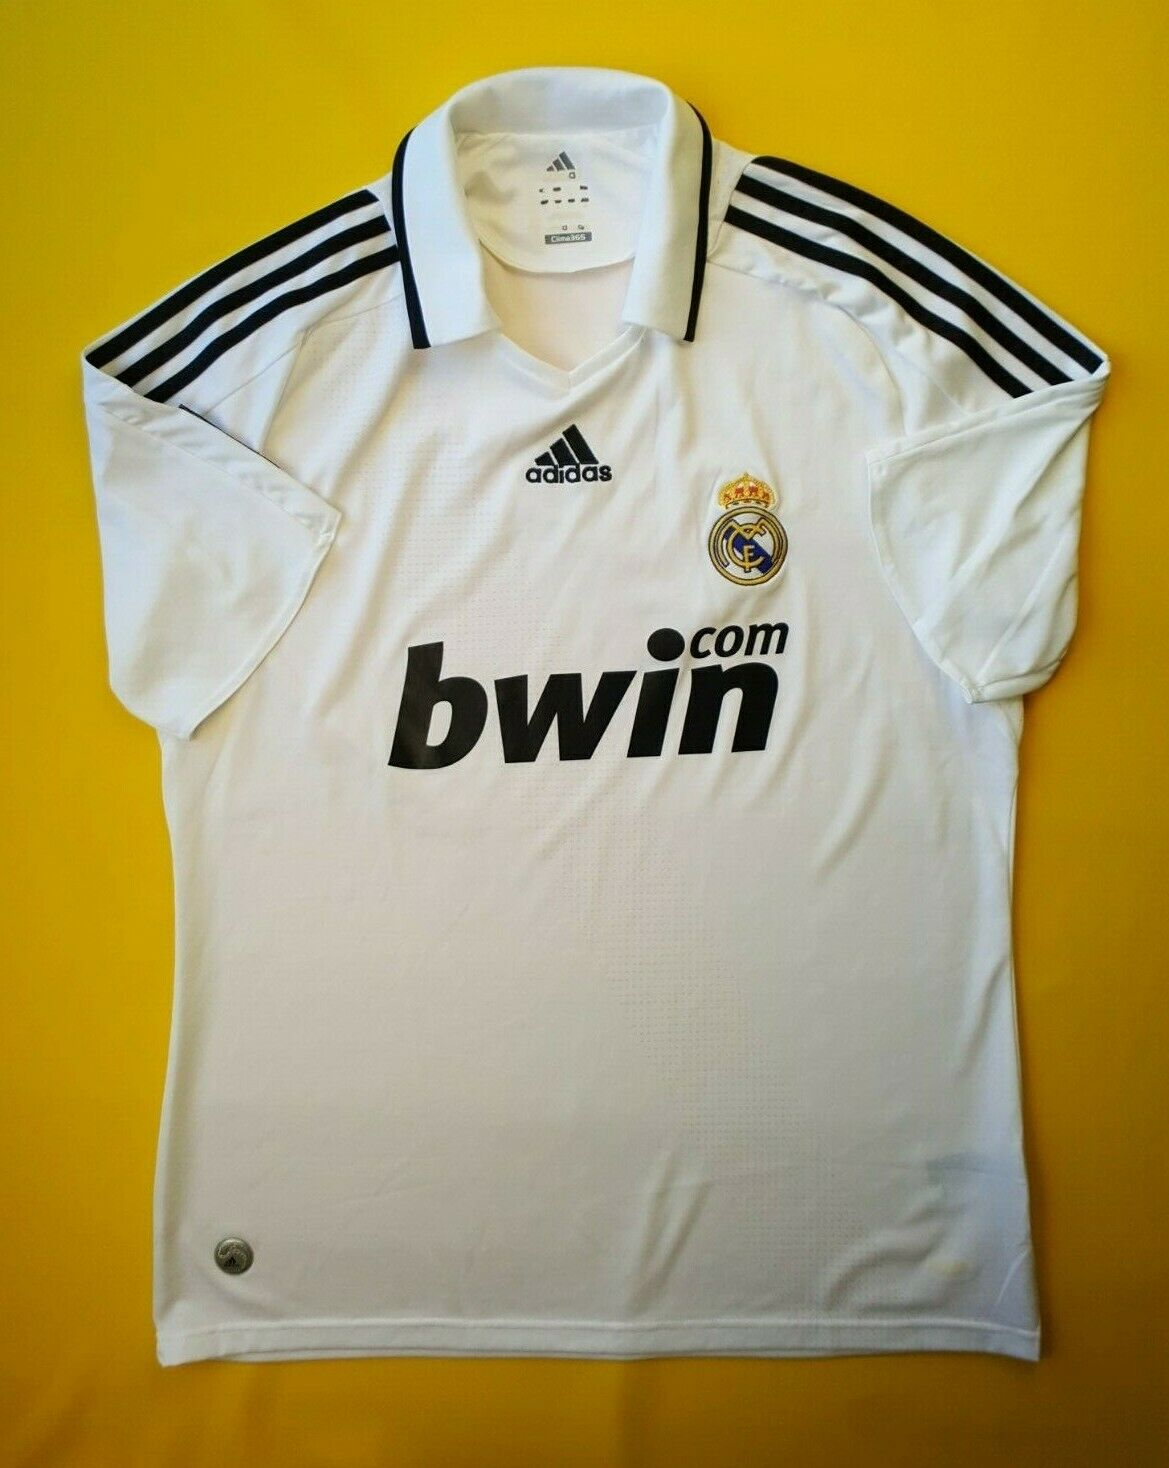 16d10c73c 5 5 Real Madrid jersey large 2008 2009 home shirt soccer football Adidas  ig93